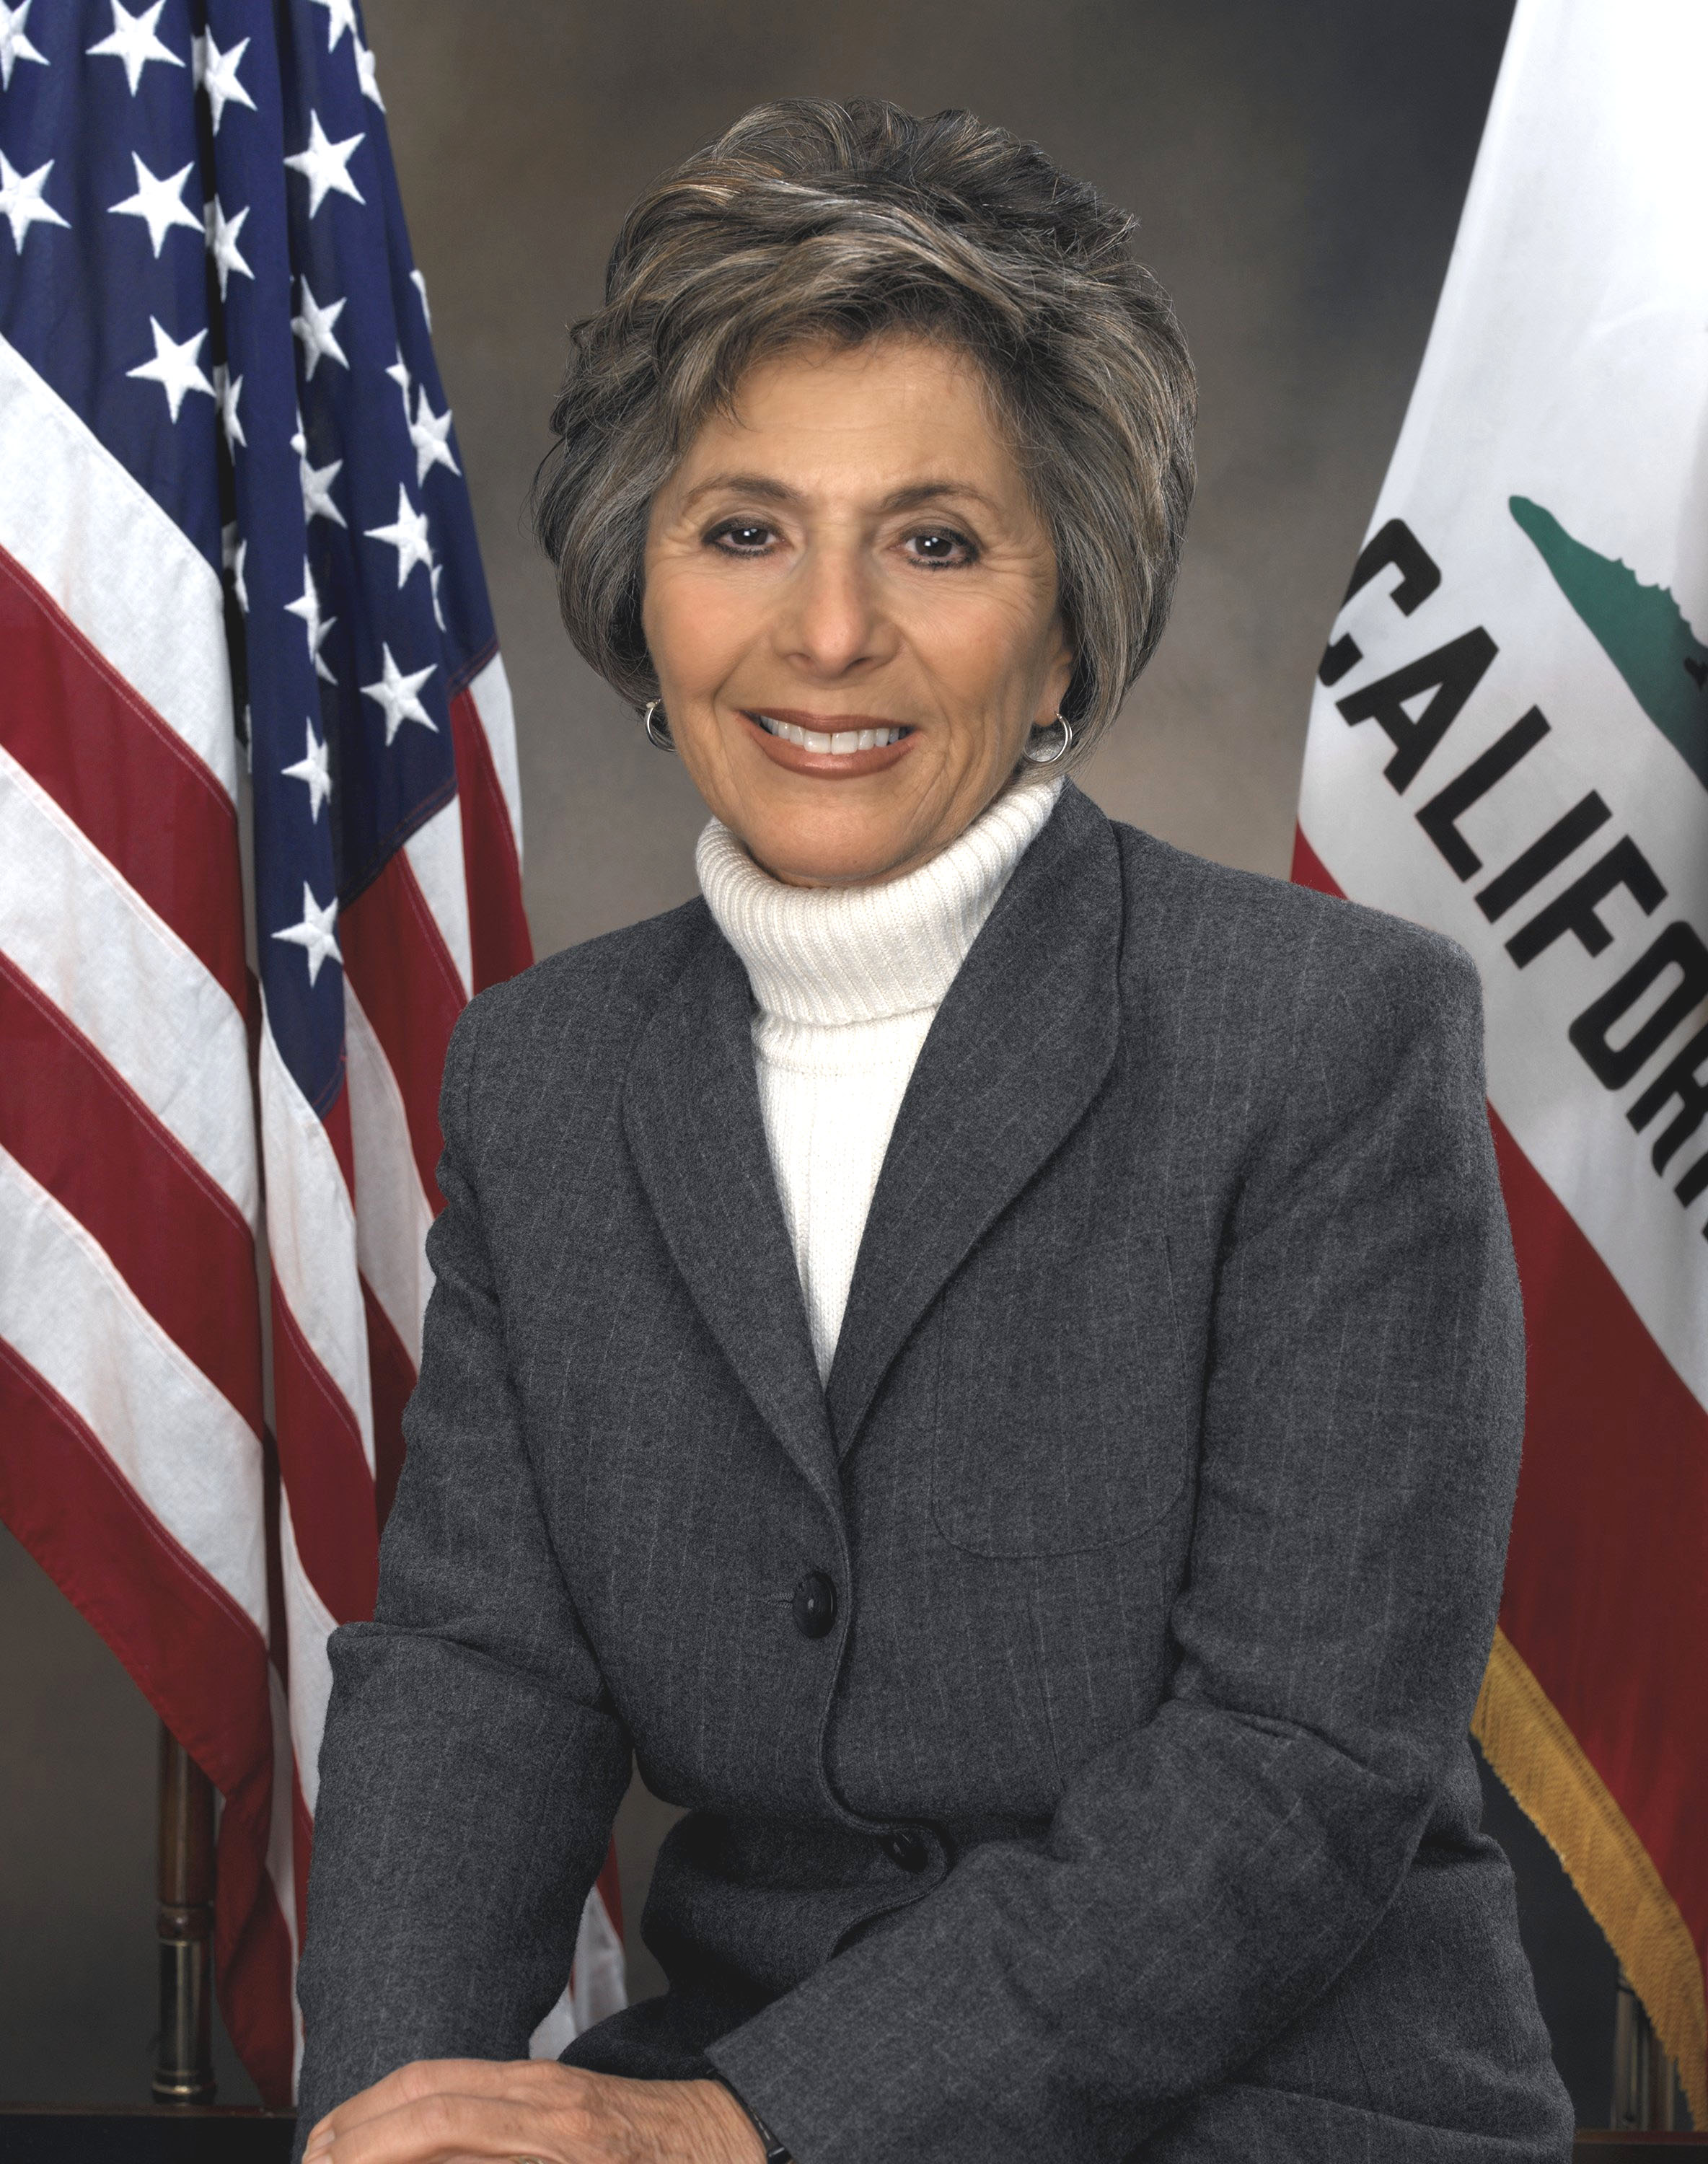 http://upload.wikimedia.org/wikipedia/commons/7/70/Barbara_Boxer_2005.jpg